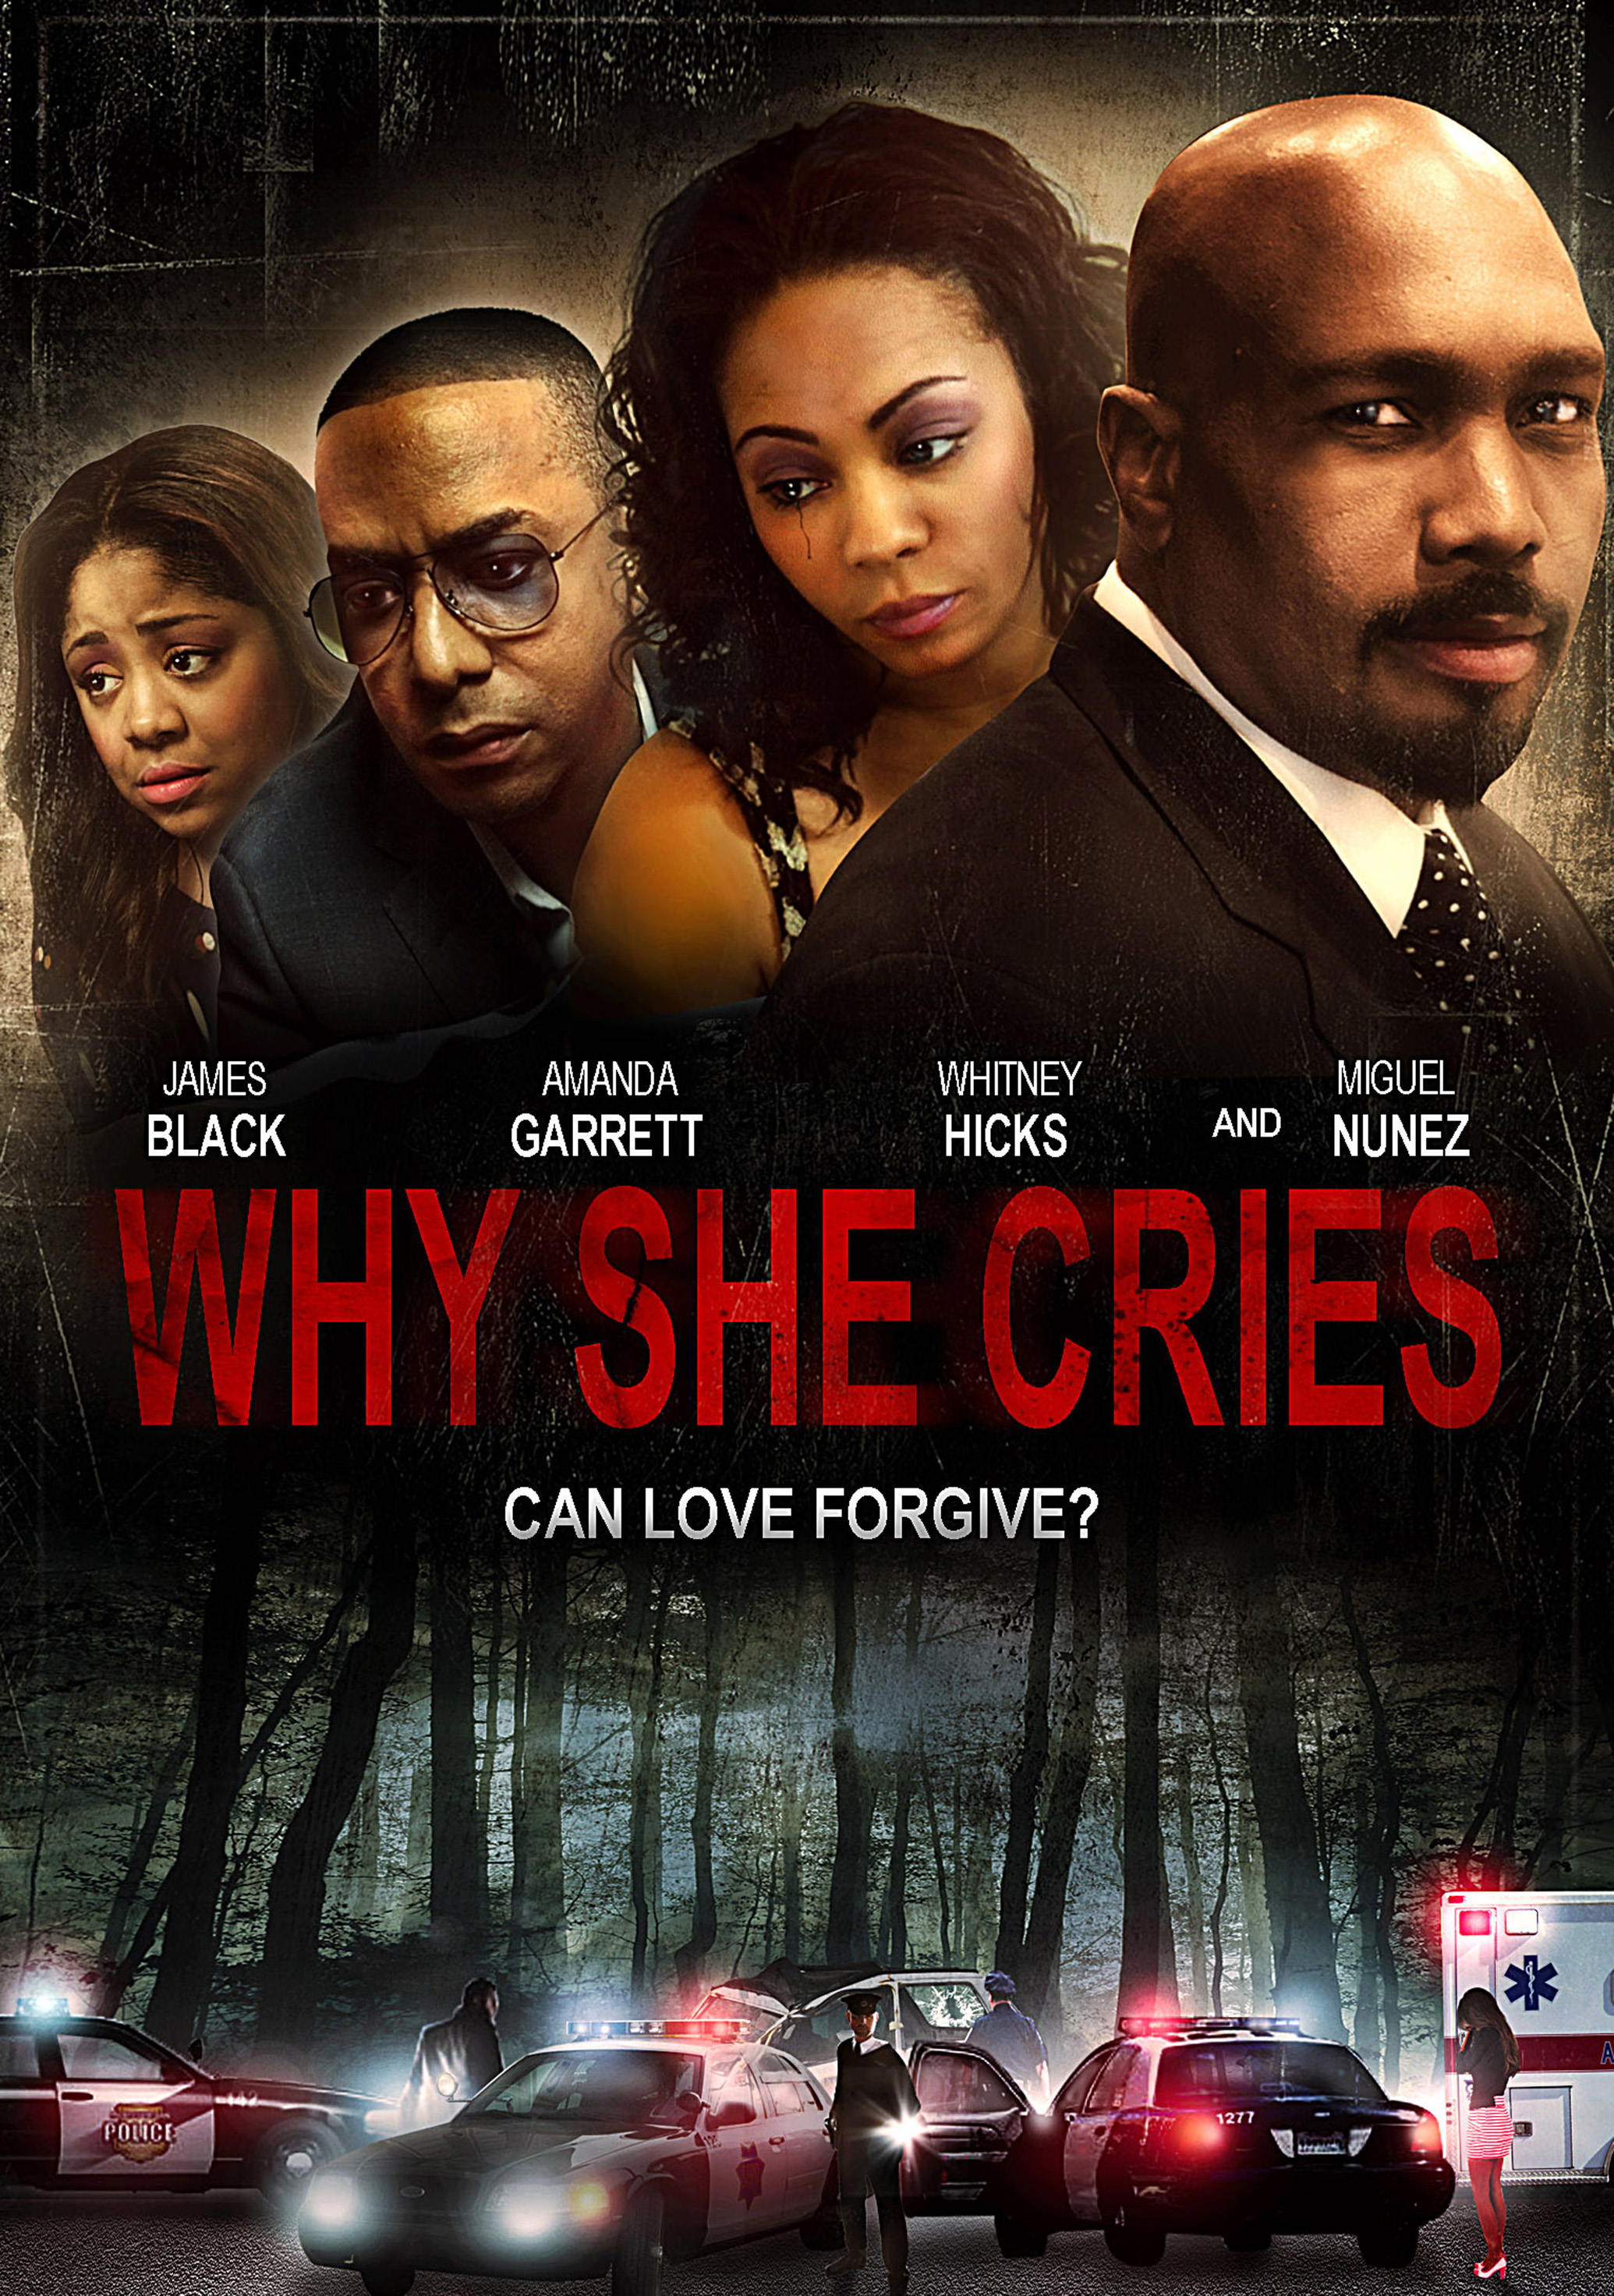 why she cries movie maverick entertainment